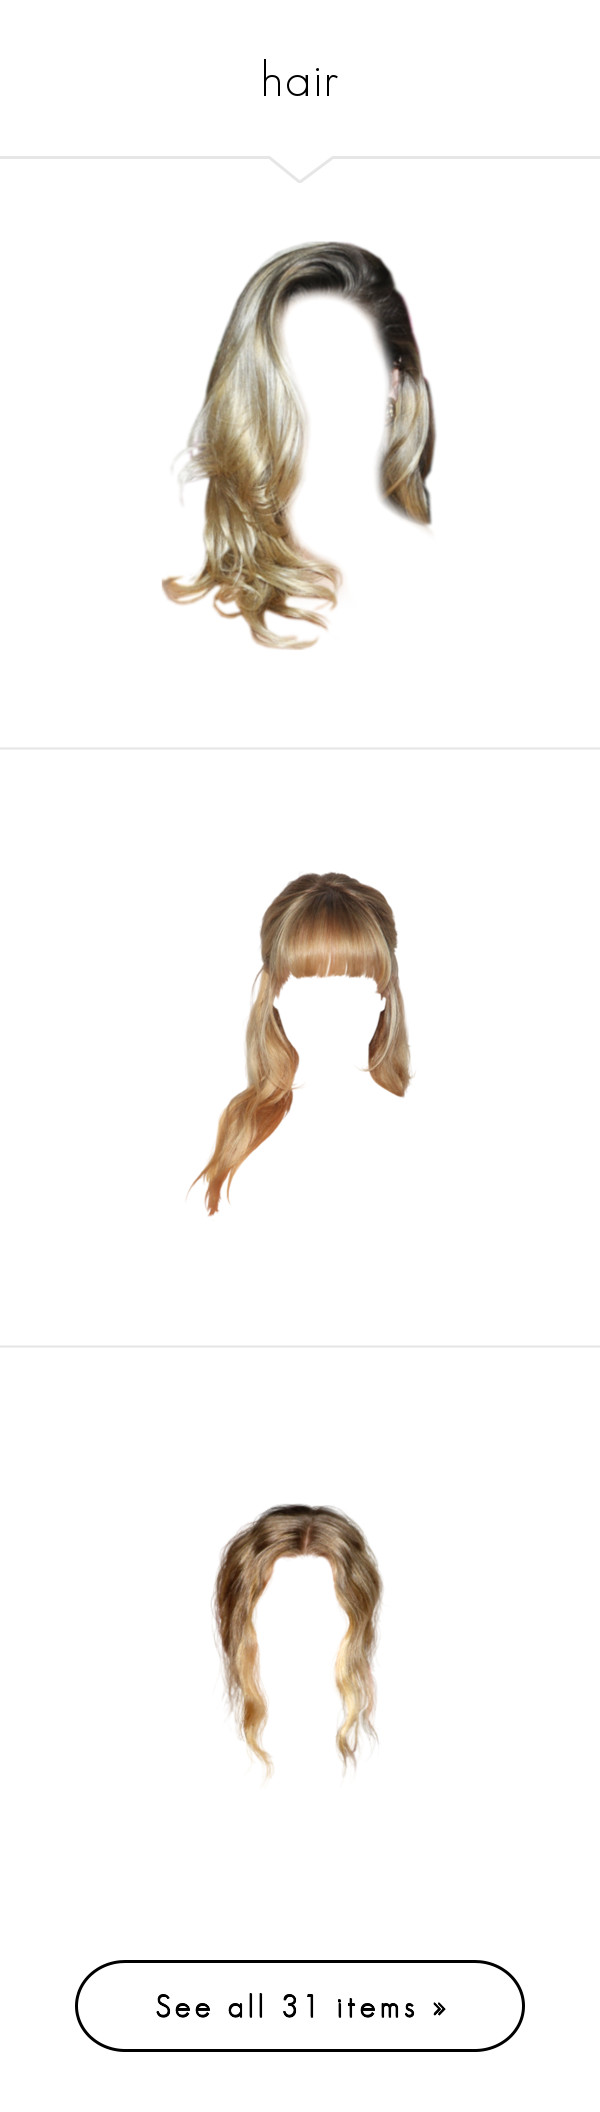 """""""hair"""" by pixiekid ❤ liked on Polyvore featuring hair, hairstyles, doll hair, cabelo, dolls, filler, blonde, wigs, doll parts and fillers"""